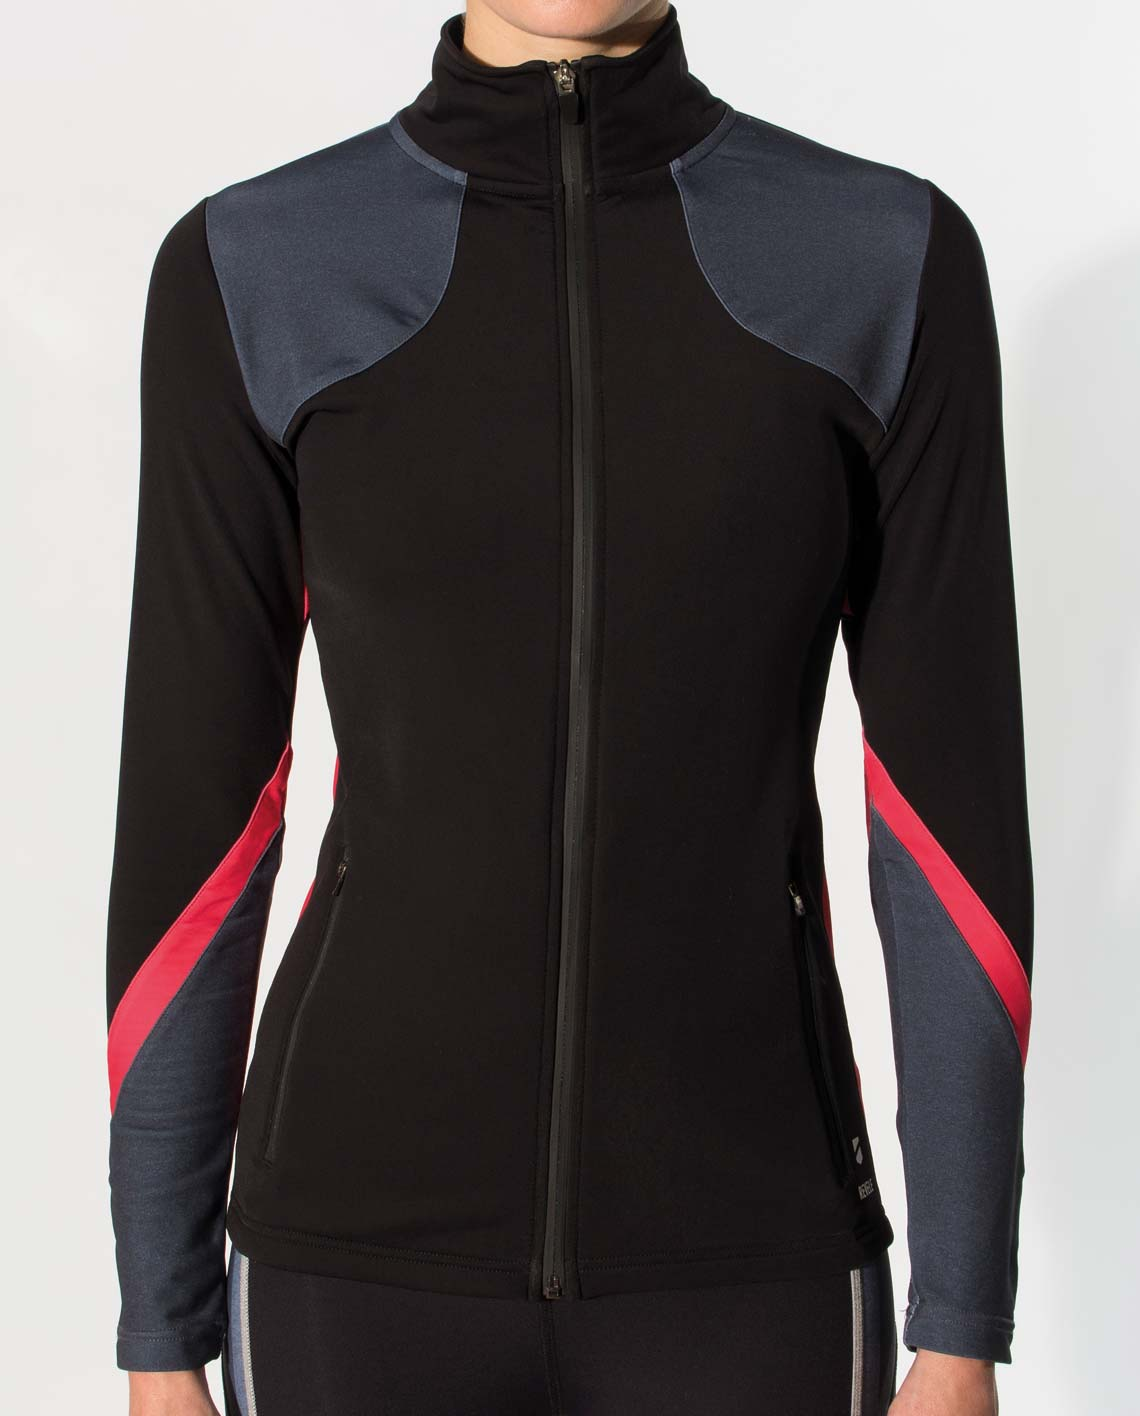 Warm up Rugby jacket for women